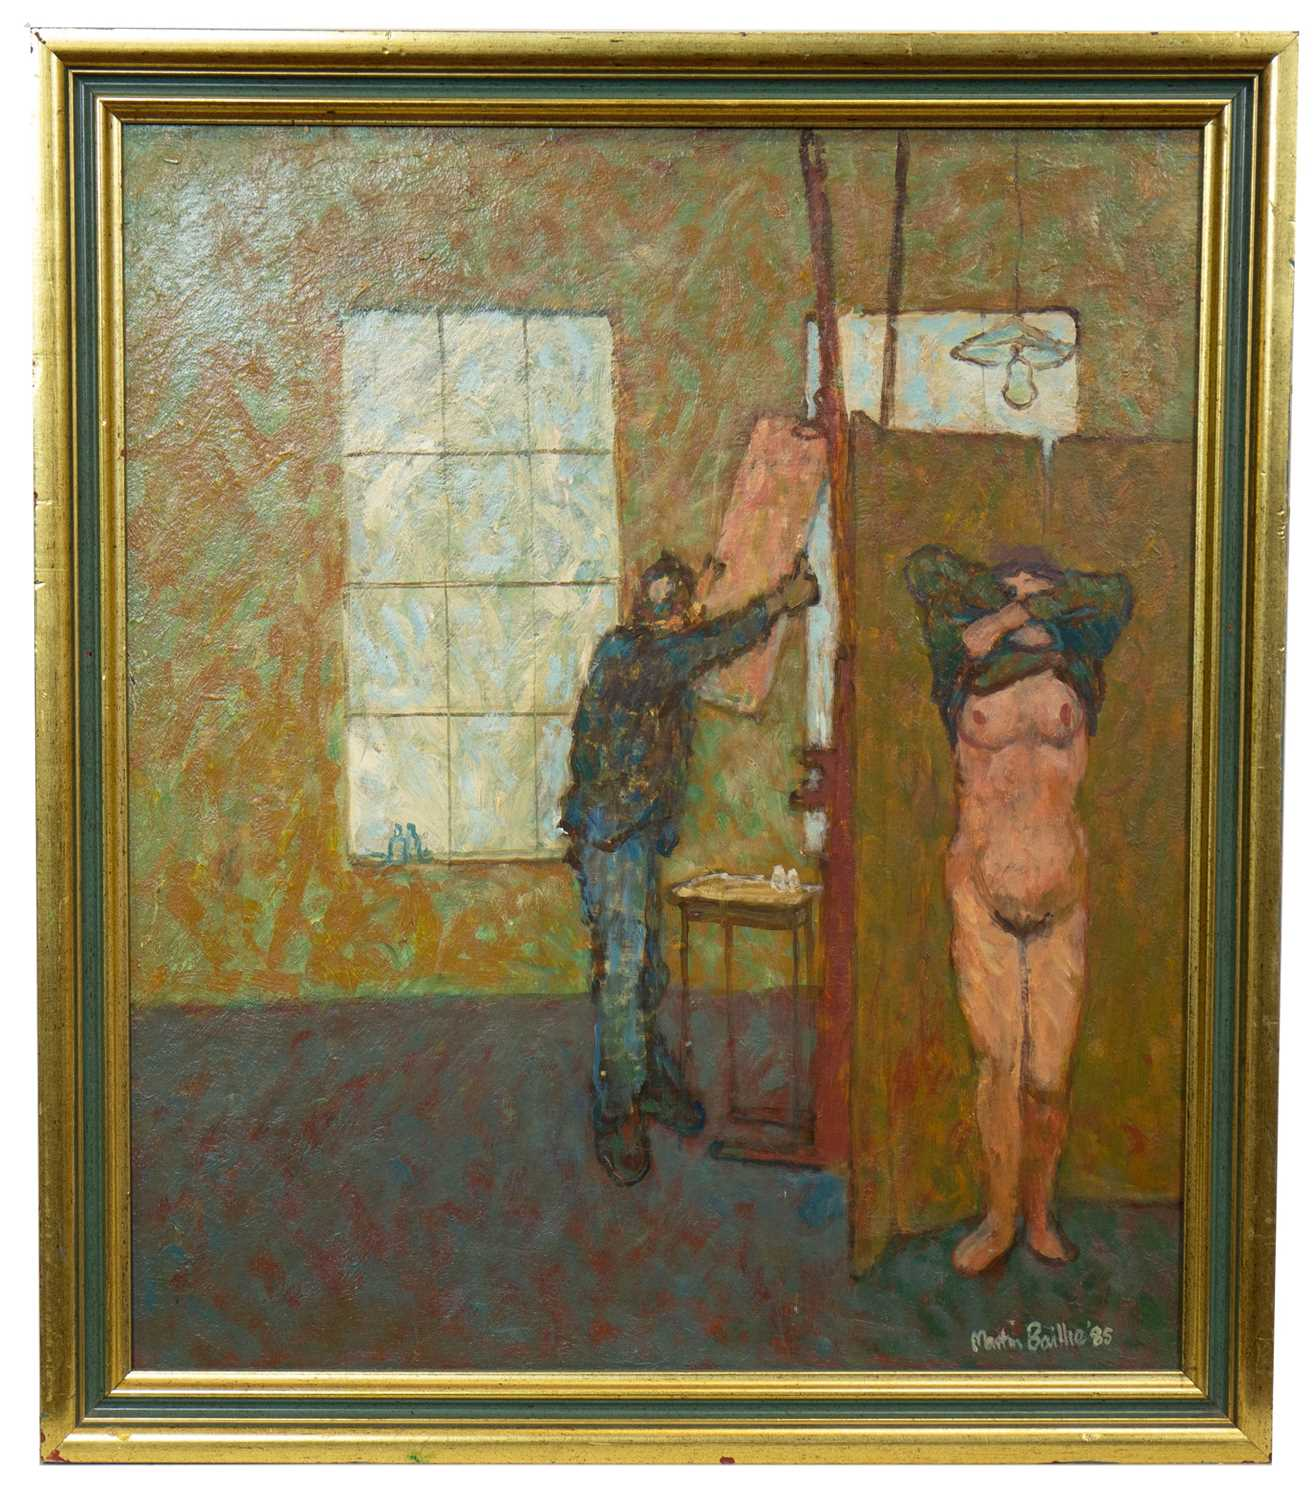 Lot 573 - PAINTER & MODEL, AN OIL BY MARTIN BAILLE